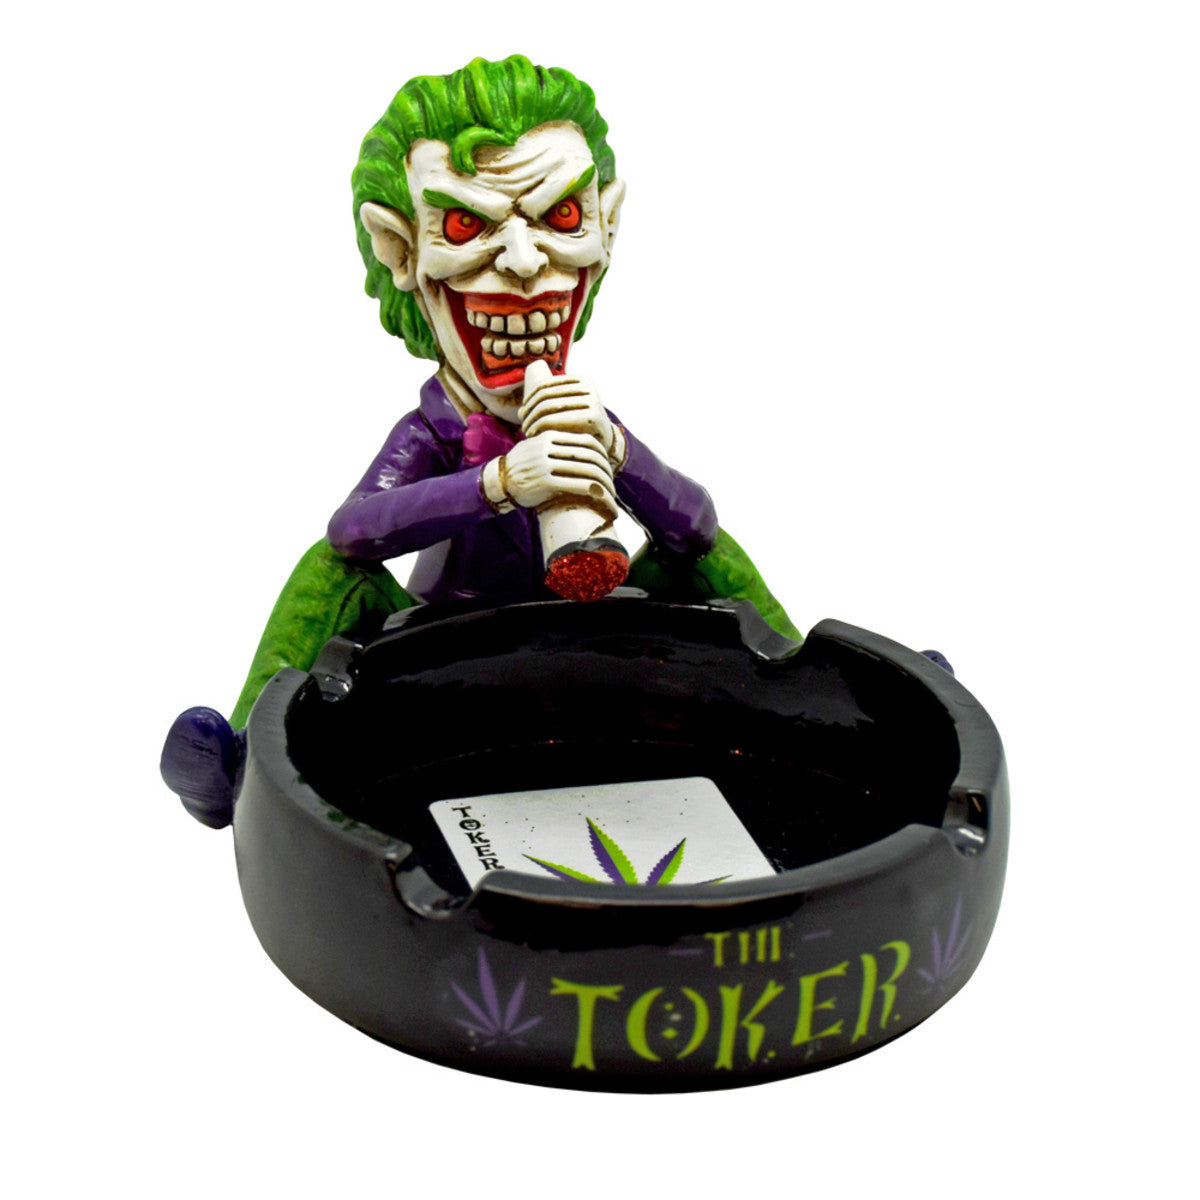 The Toker Clown resin Ashtray - 4x5.3